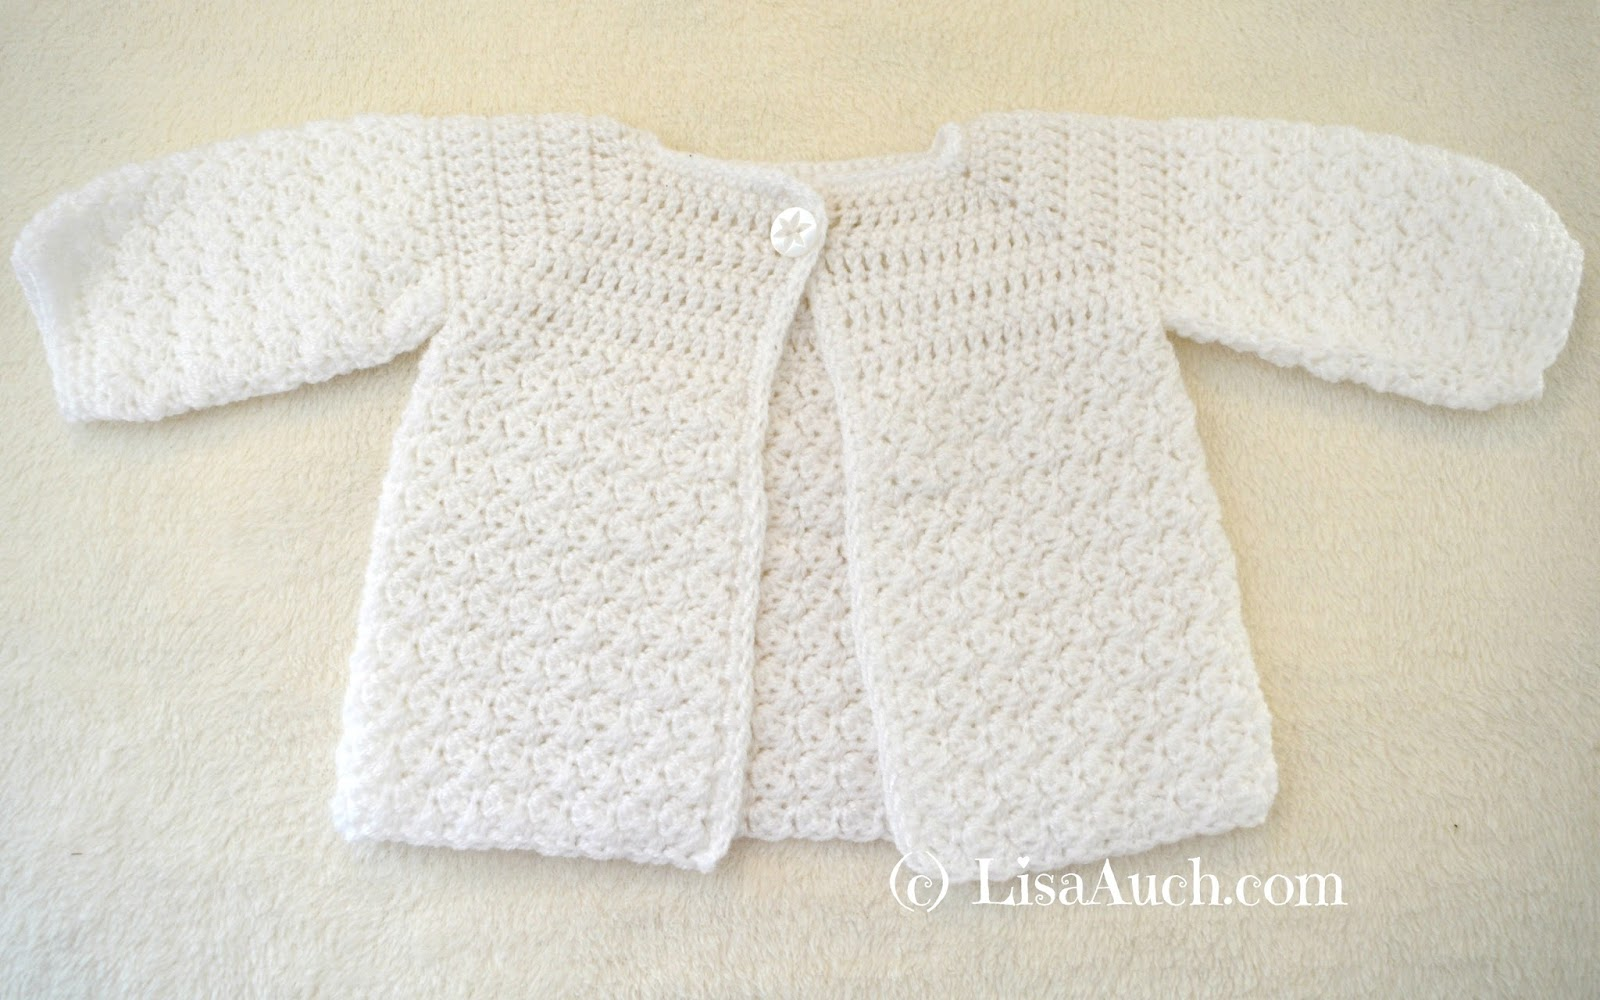 Free Crochet Pattern For Easy Baby Sweater : Crochet Baby Cardigan Easy Free Pattern FREE Crochet ...